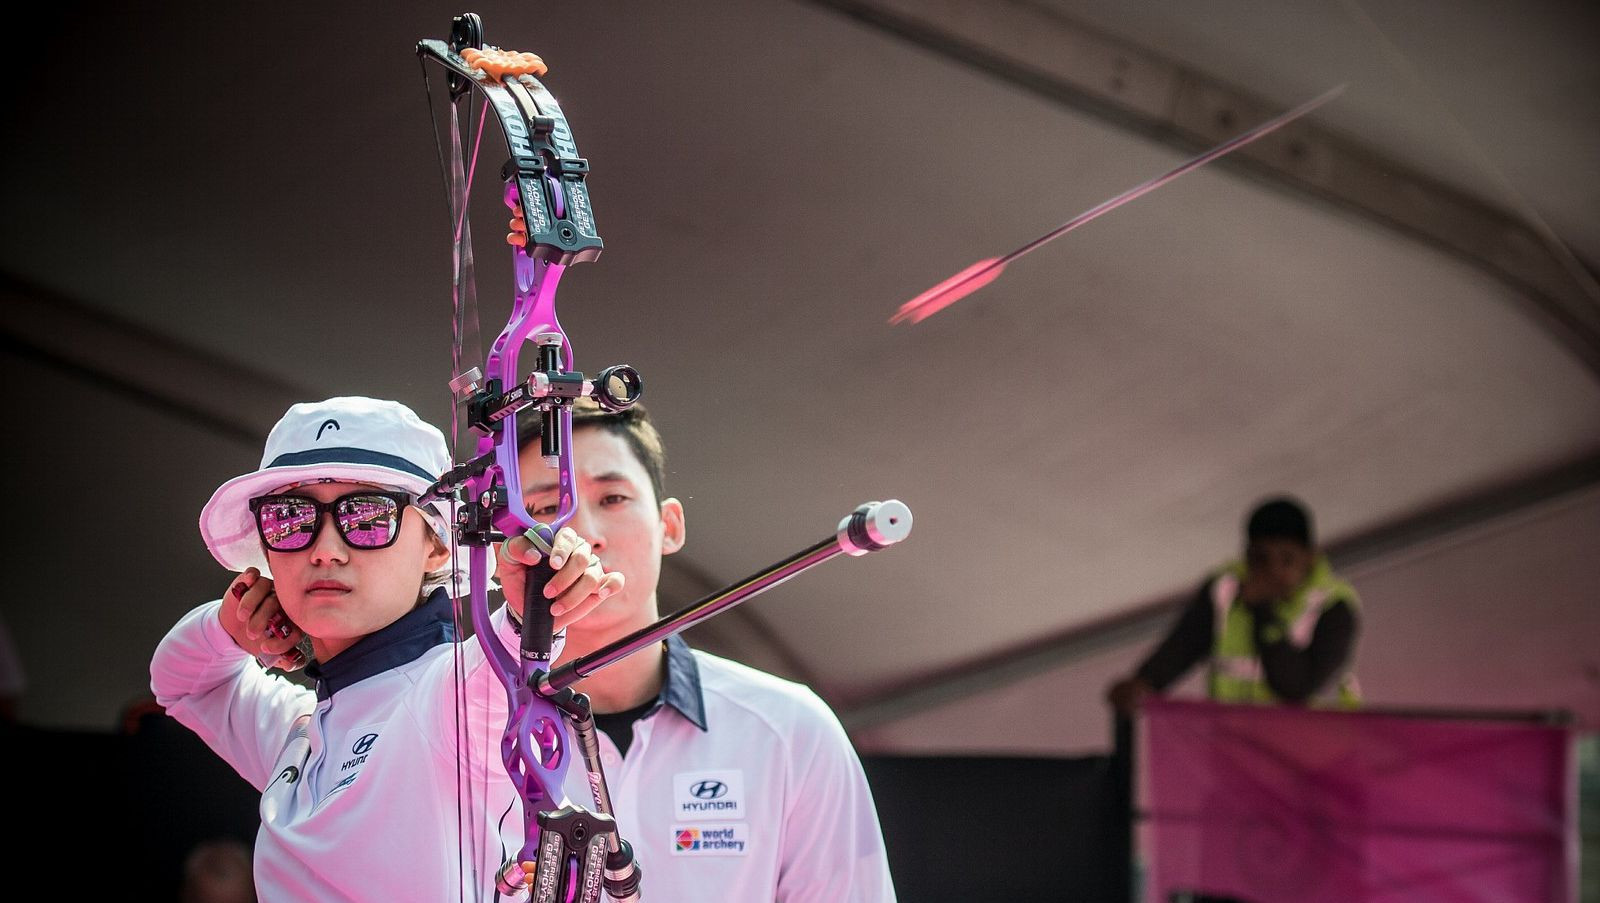 South Korea's Song Yun Soo won a total of three medals at the World Archery Championships today ©World Archery